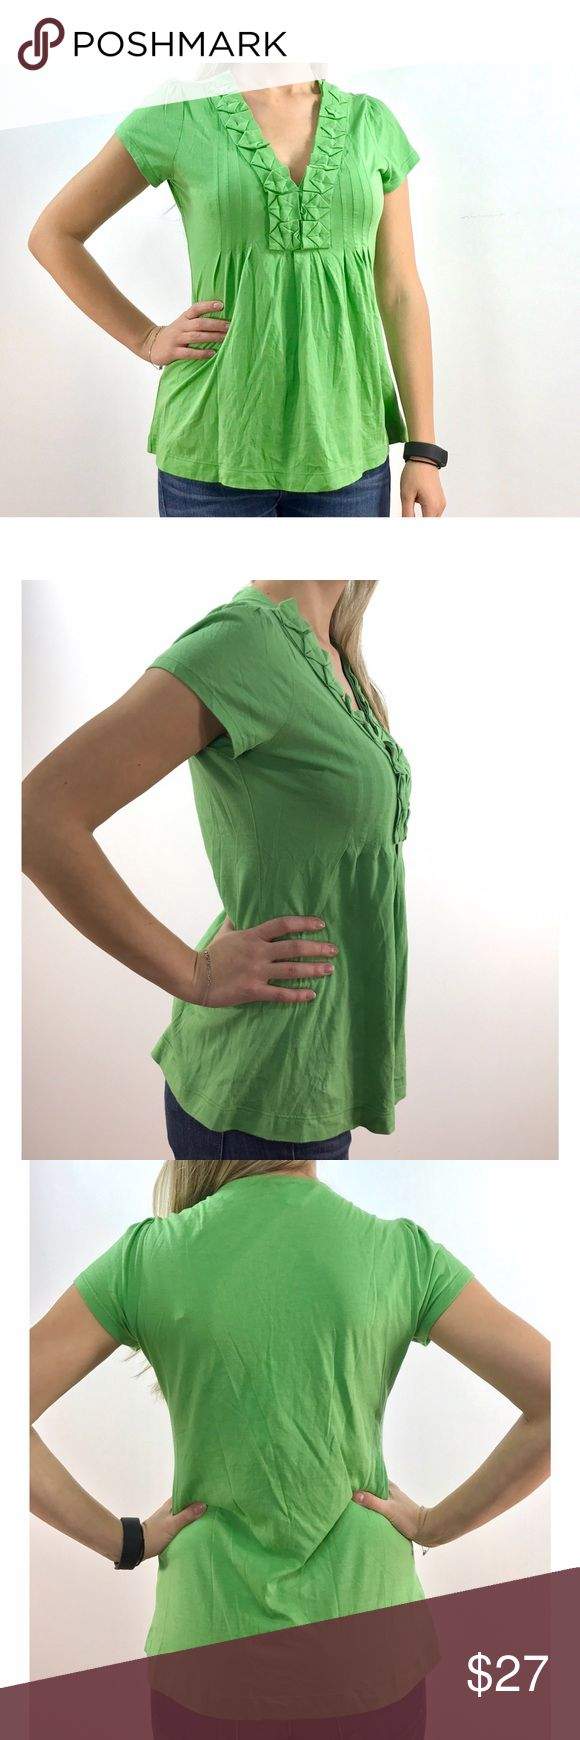 Banana Republic Green Short Sleeve Top This preloved size S top has short sleeves and v neck. The fitted bust is embellished with origami-style decorations along the neckline. Preloved items have normal wear and tear. 55% cotton; 45% modal. Banana Republic Tops Tees - Short Sleeve